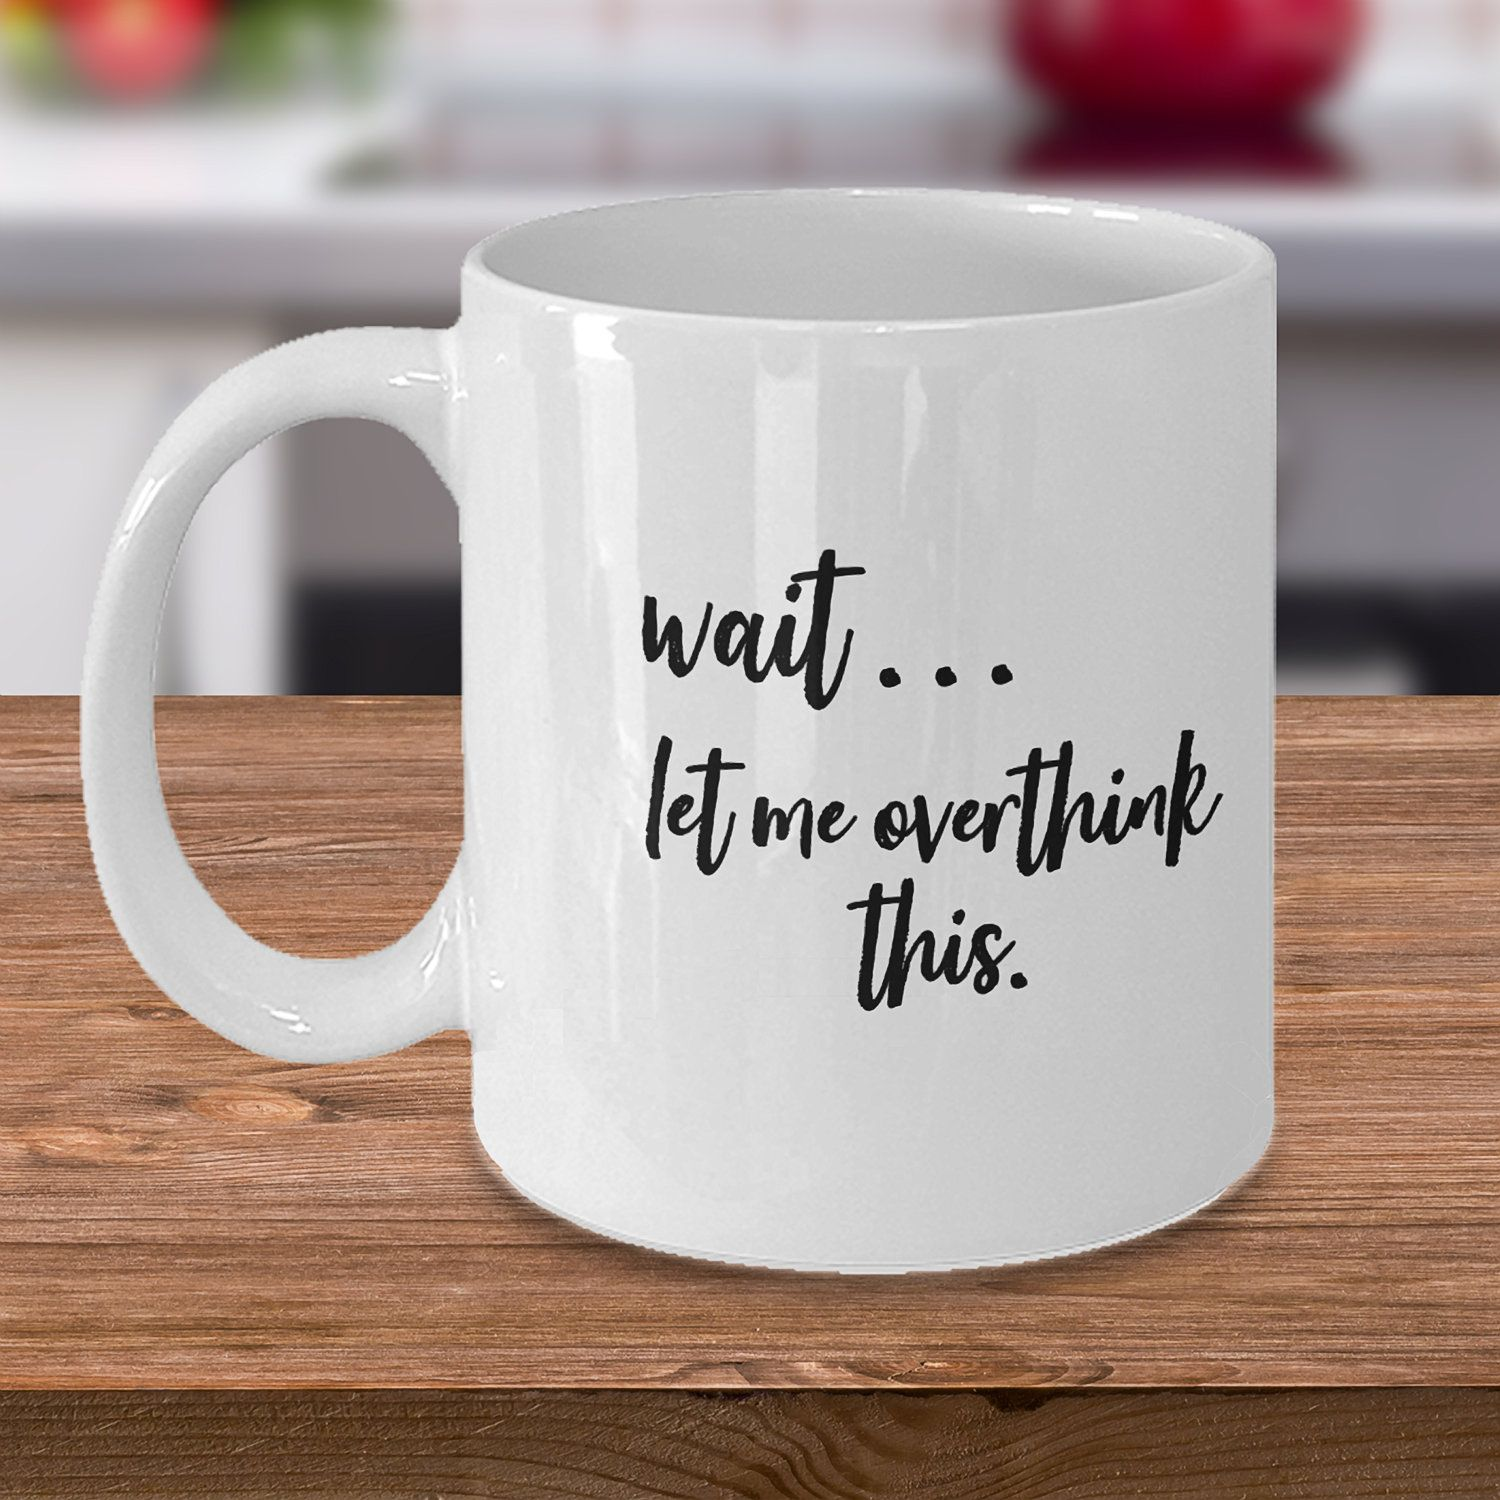 Funny Overthinkers Coffee Mug Gift, Wait Let Me Over Think